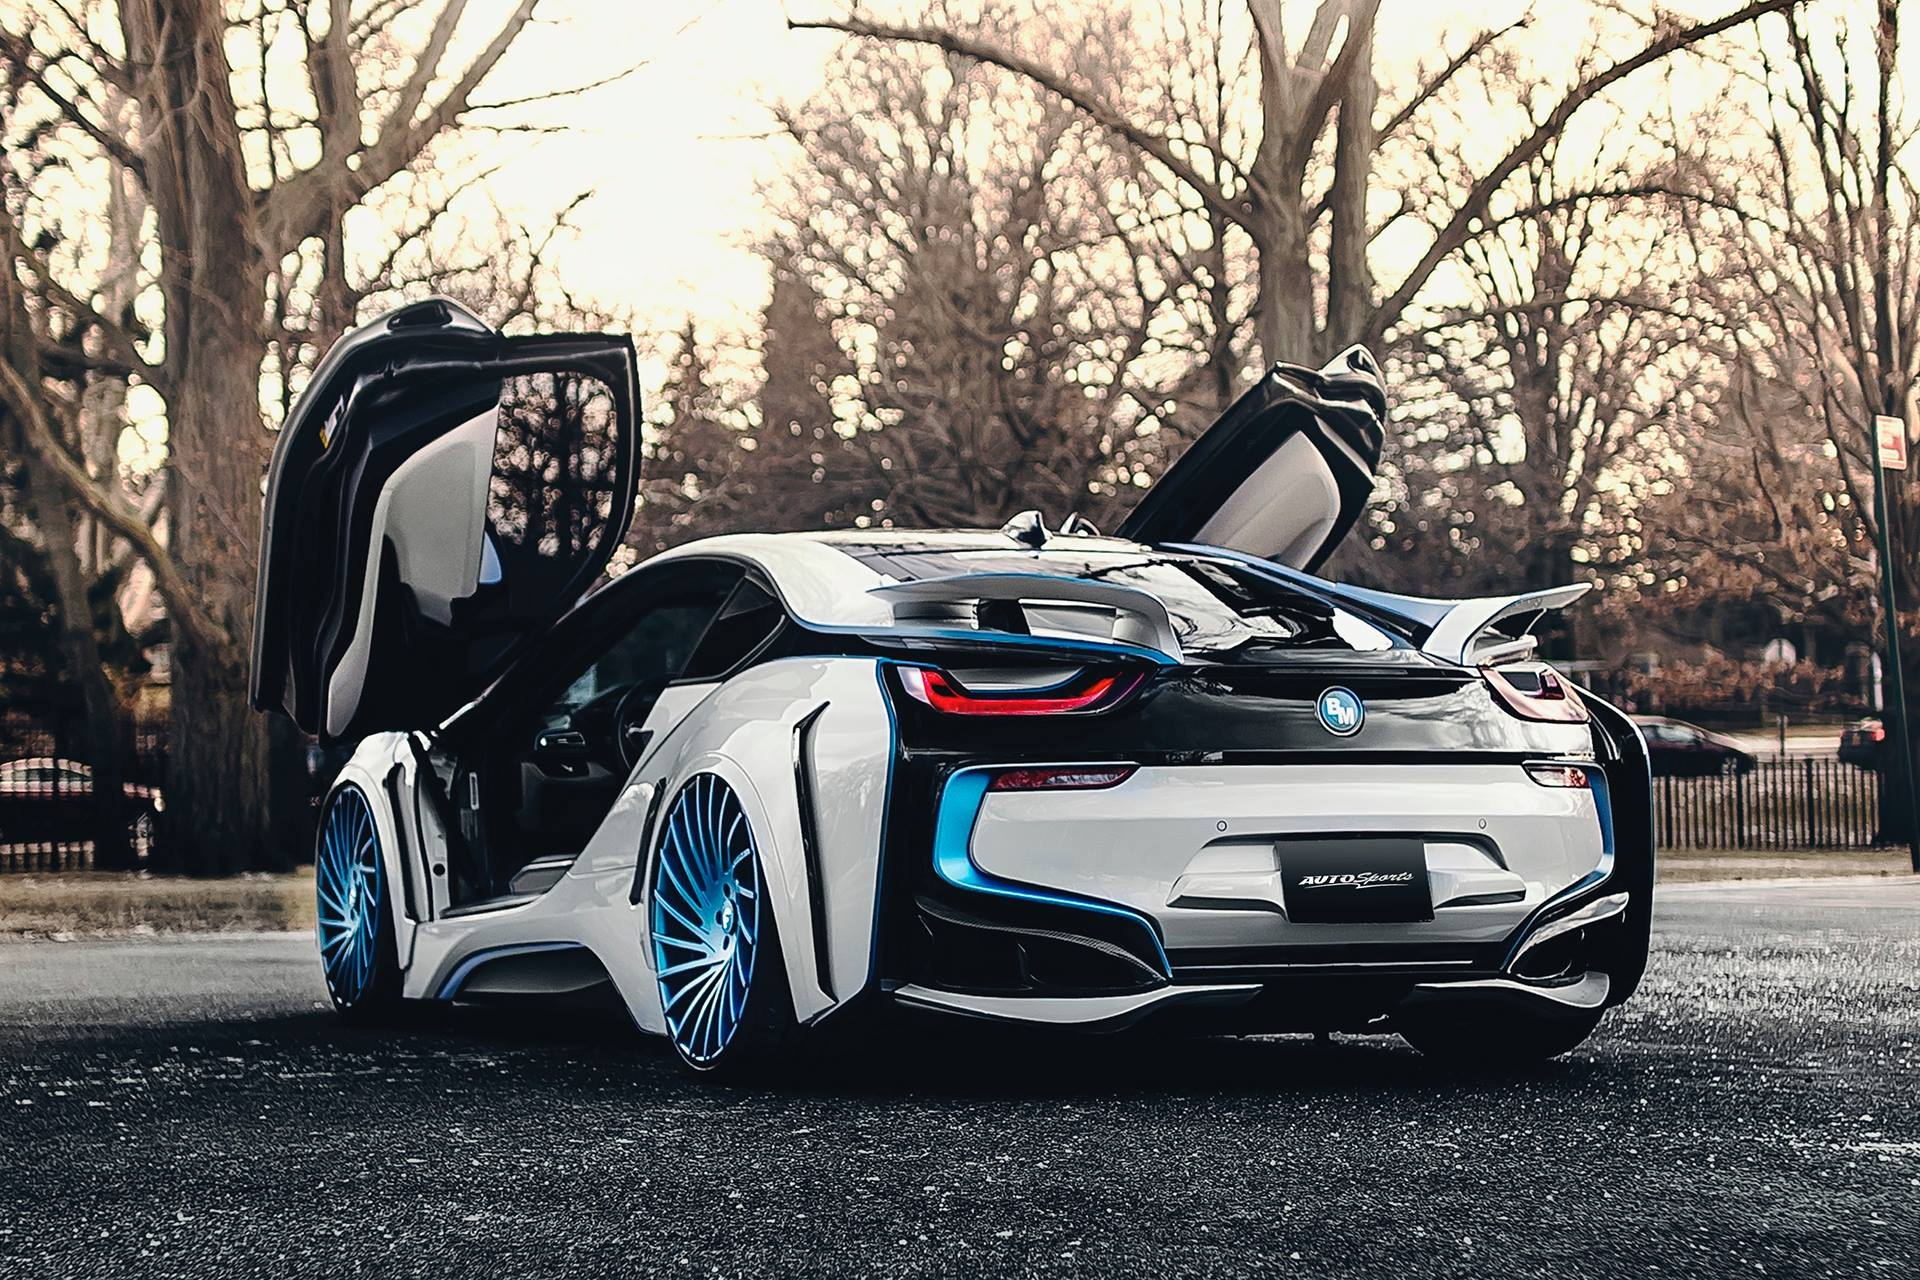 Spaceship In The Form Of The Car Custom White Bmw I8 With Blue